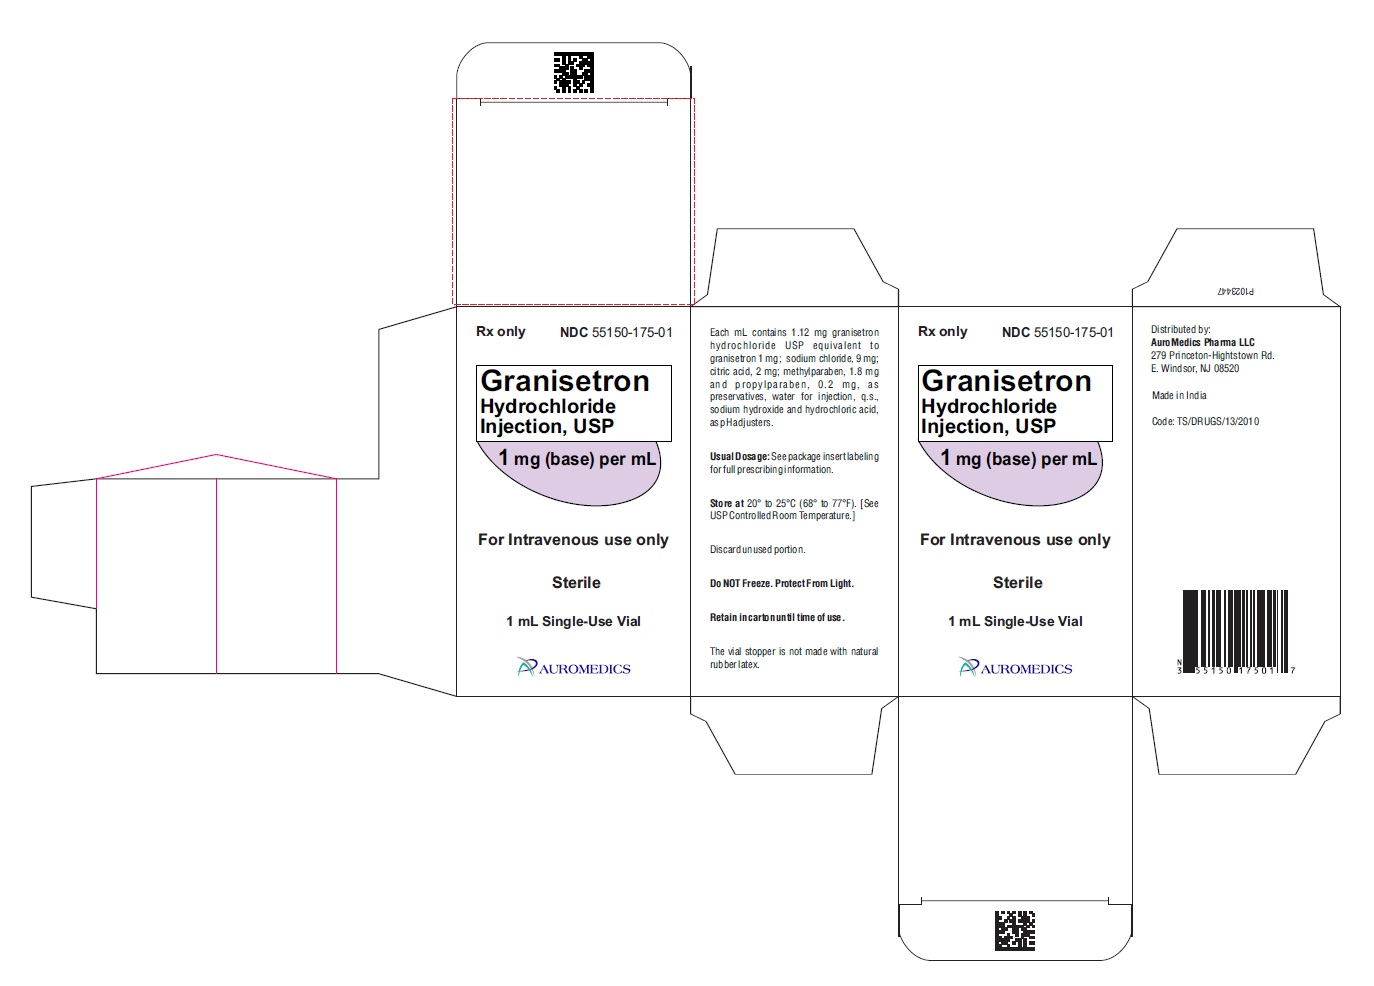 PACKAGE LABEL-PRINCIPAL DISPLAY PANEL - 1 mg (base) per mL - Container-Carton [1 Vial]